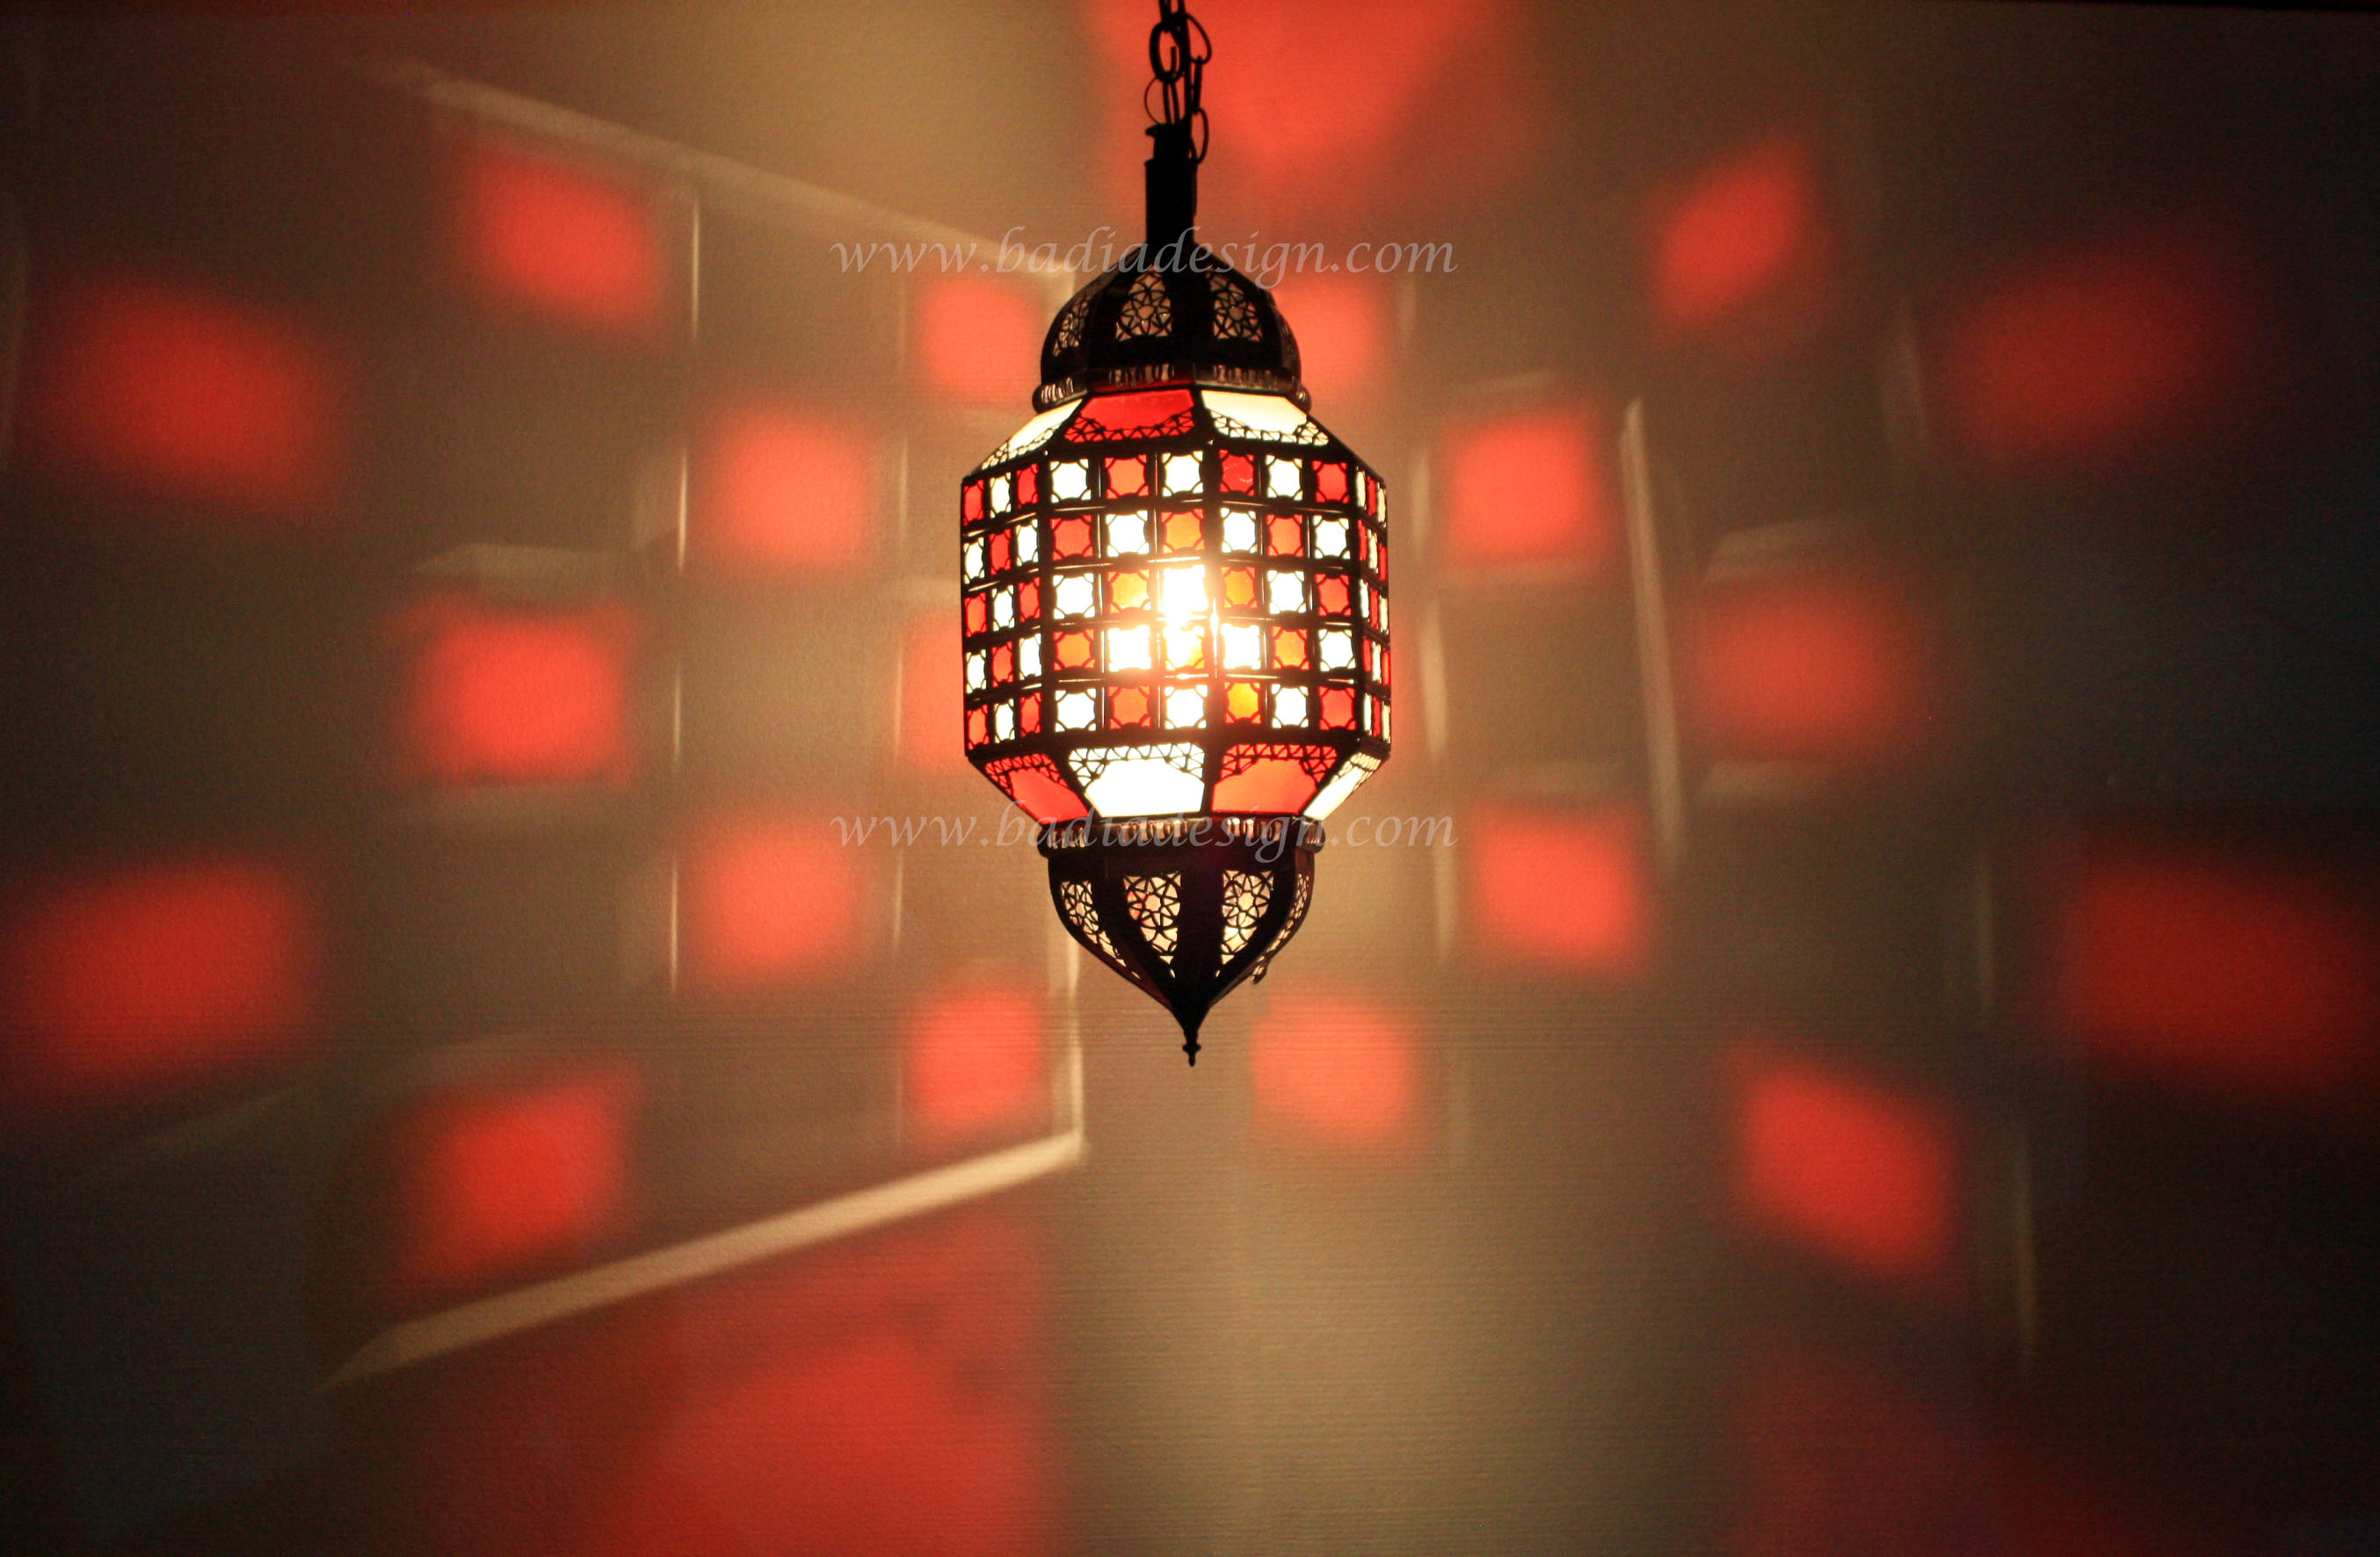 moroccan-lighting-new-york.jpg